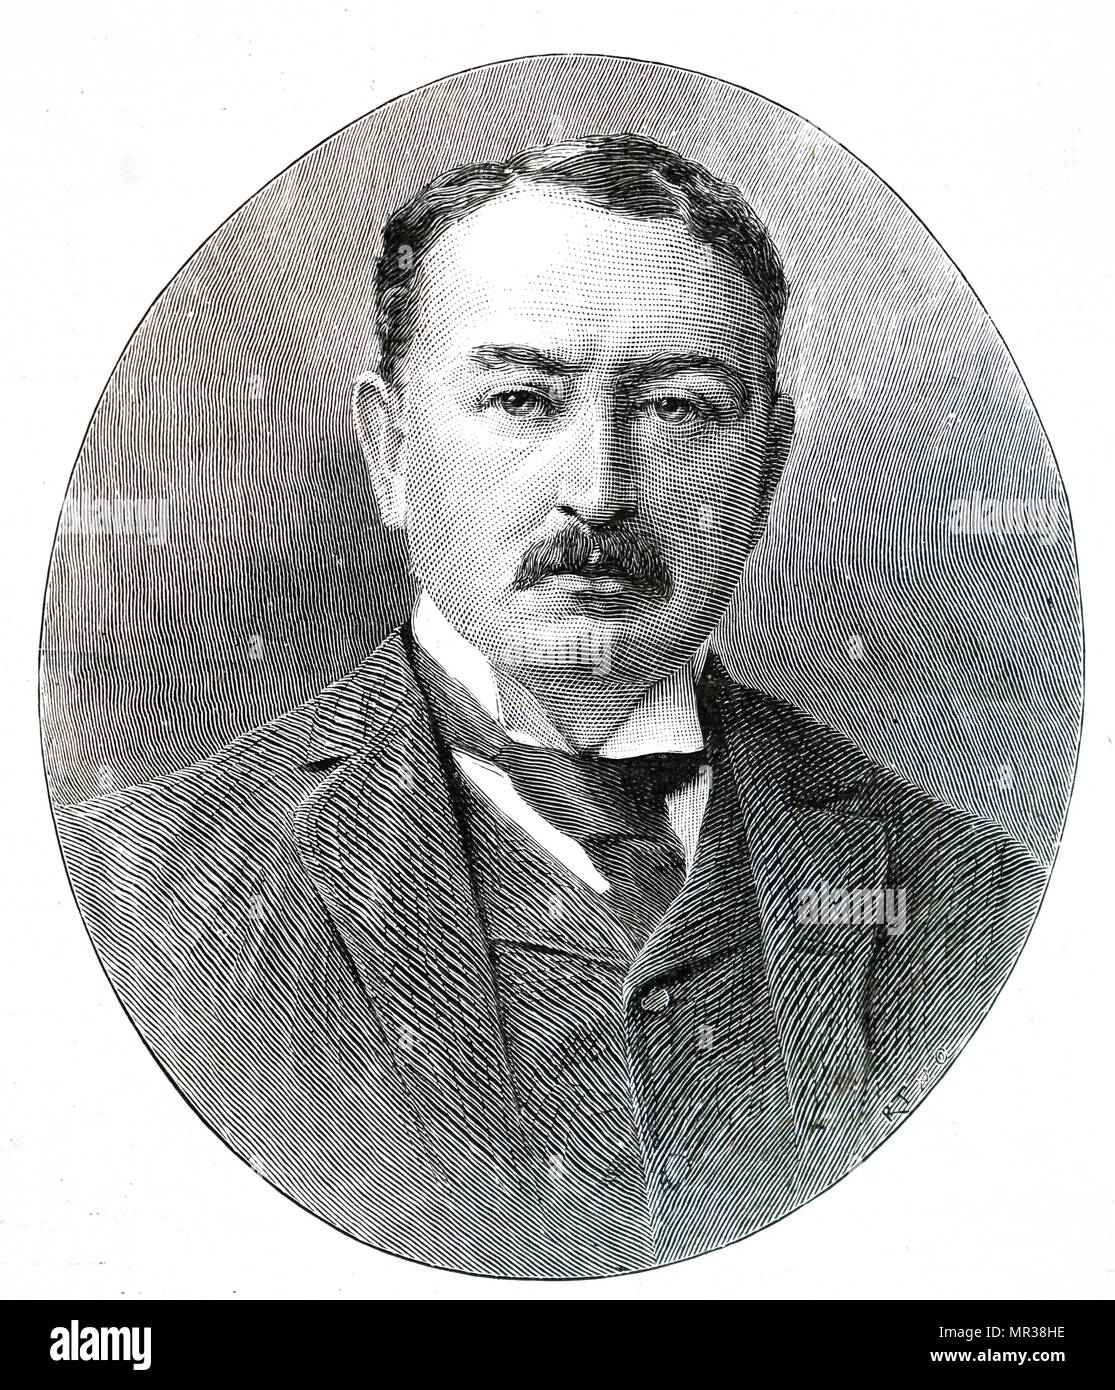 Portrait of Cecil Rhodes (1853-1902) a British businessman, mining magnate, politician and former Prime Minister of the Cape Colony. Dated 19th century Stock Photo